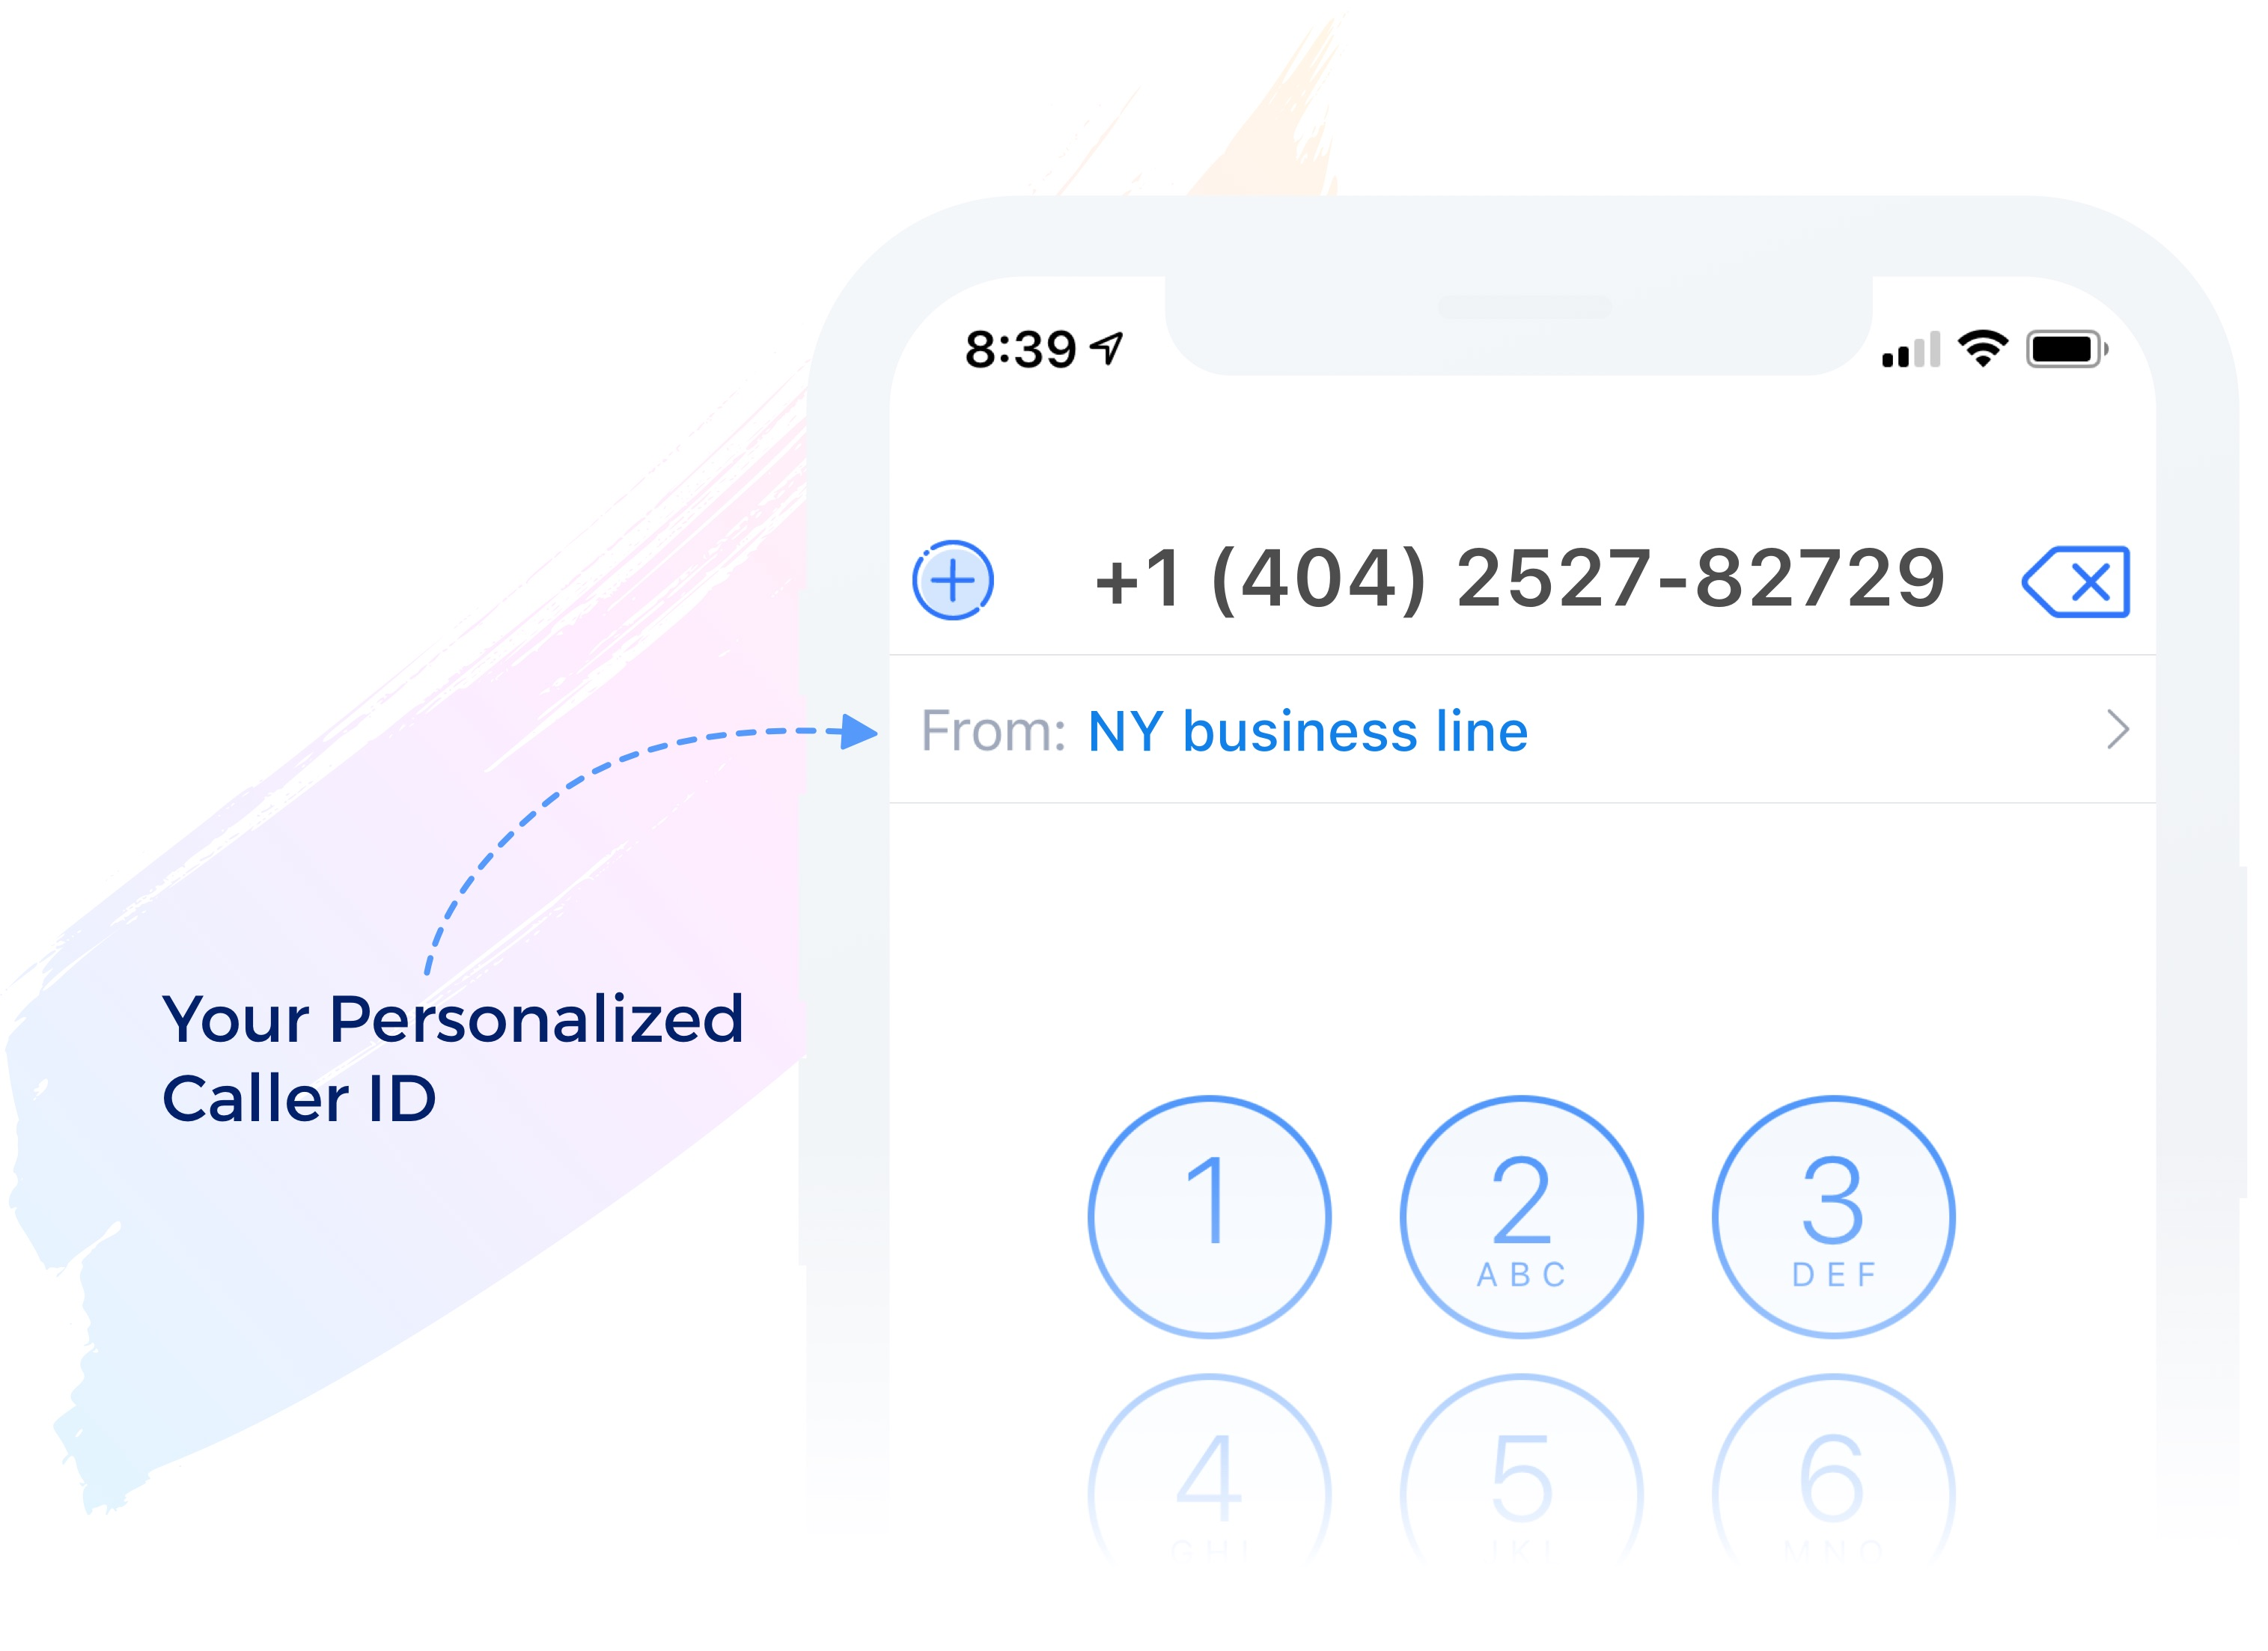 Personalized-caller-ID